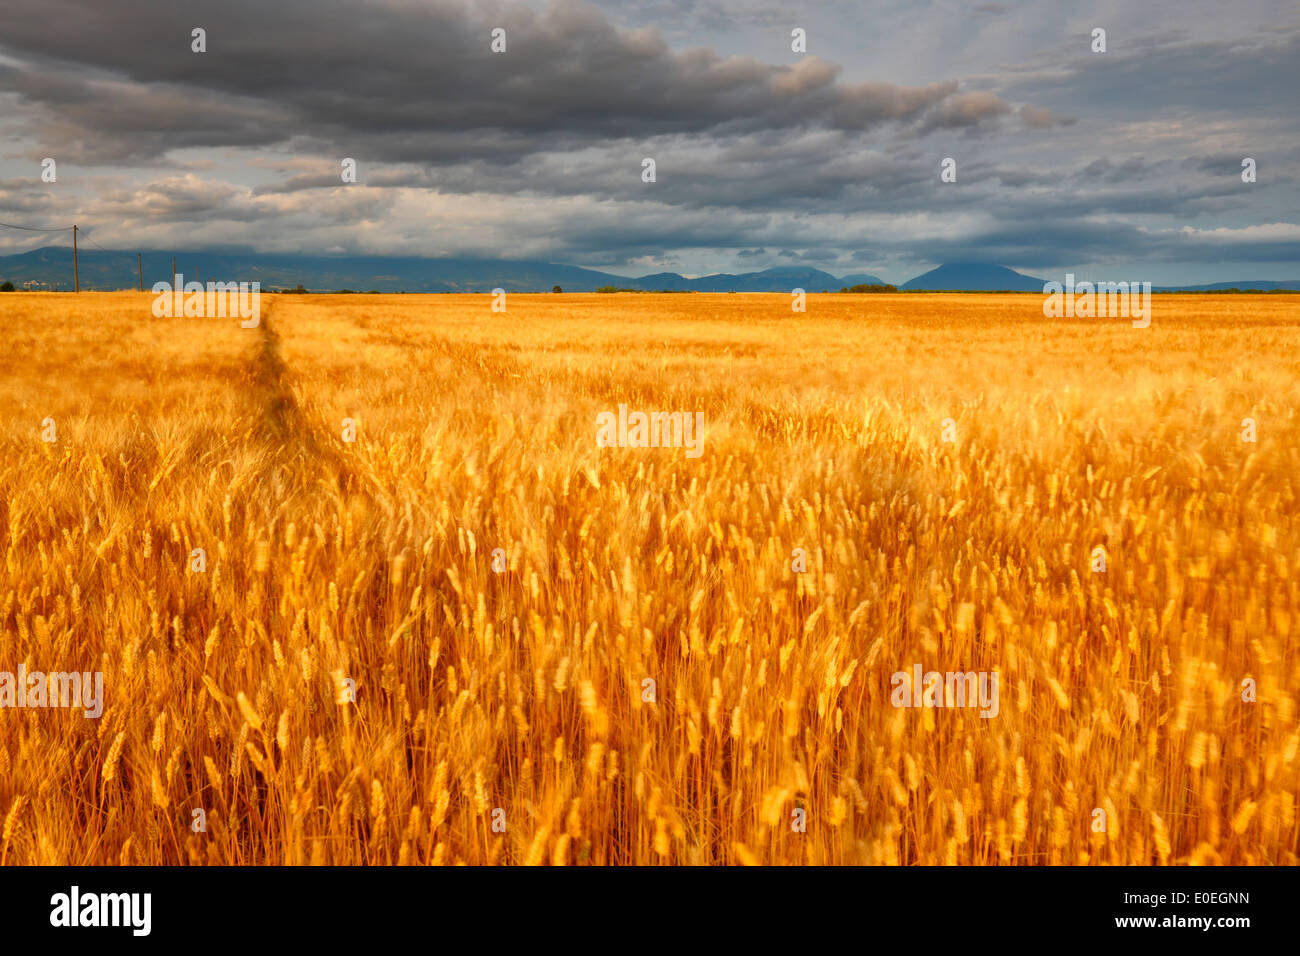 Wheat field in France, Provence - Stock Image